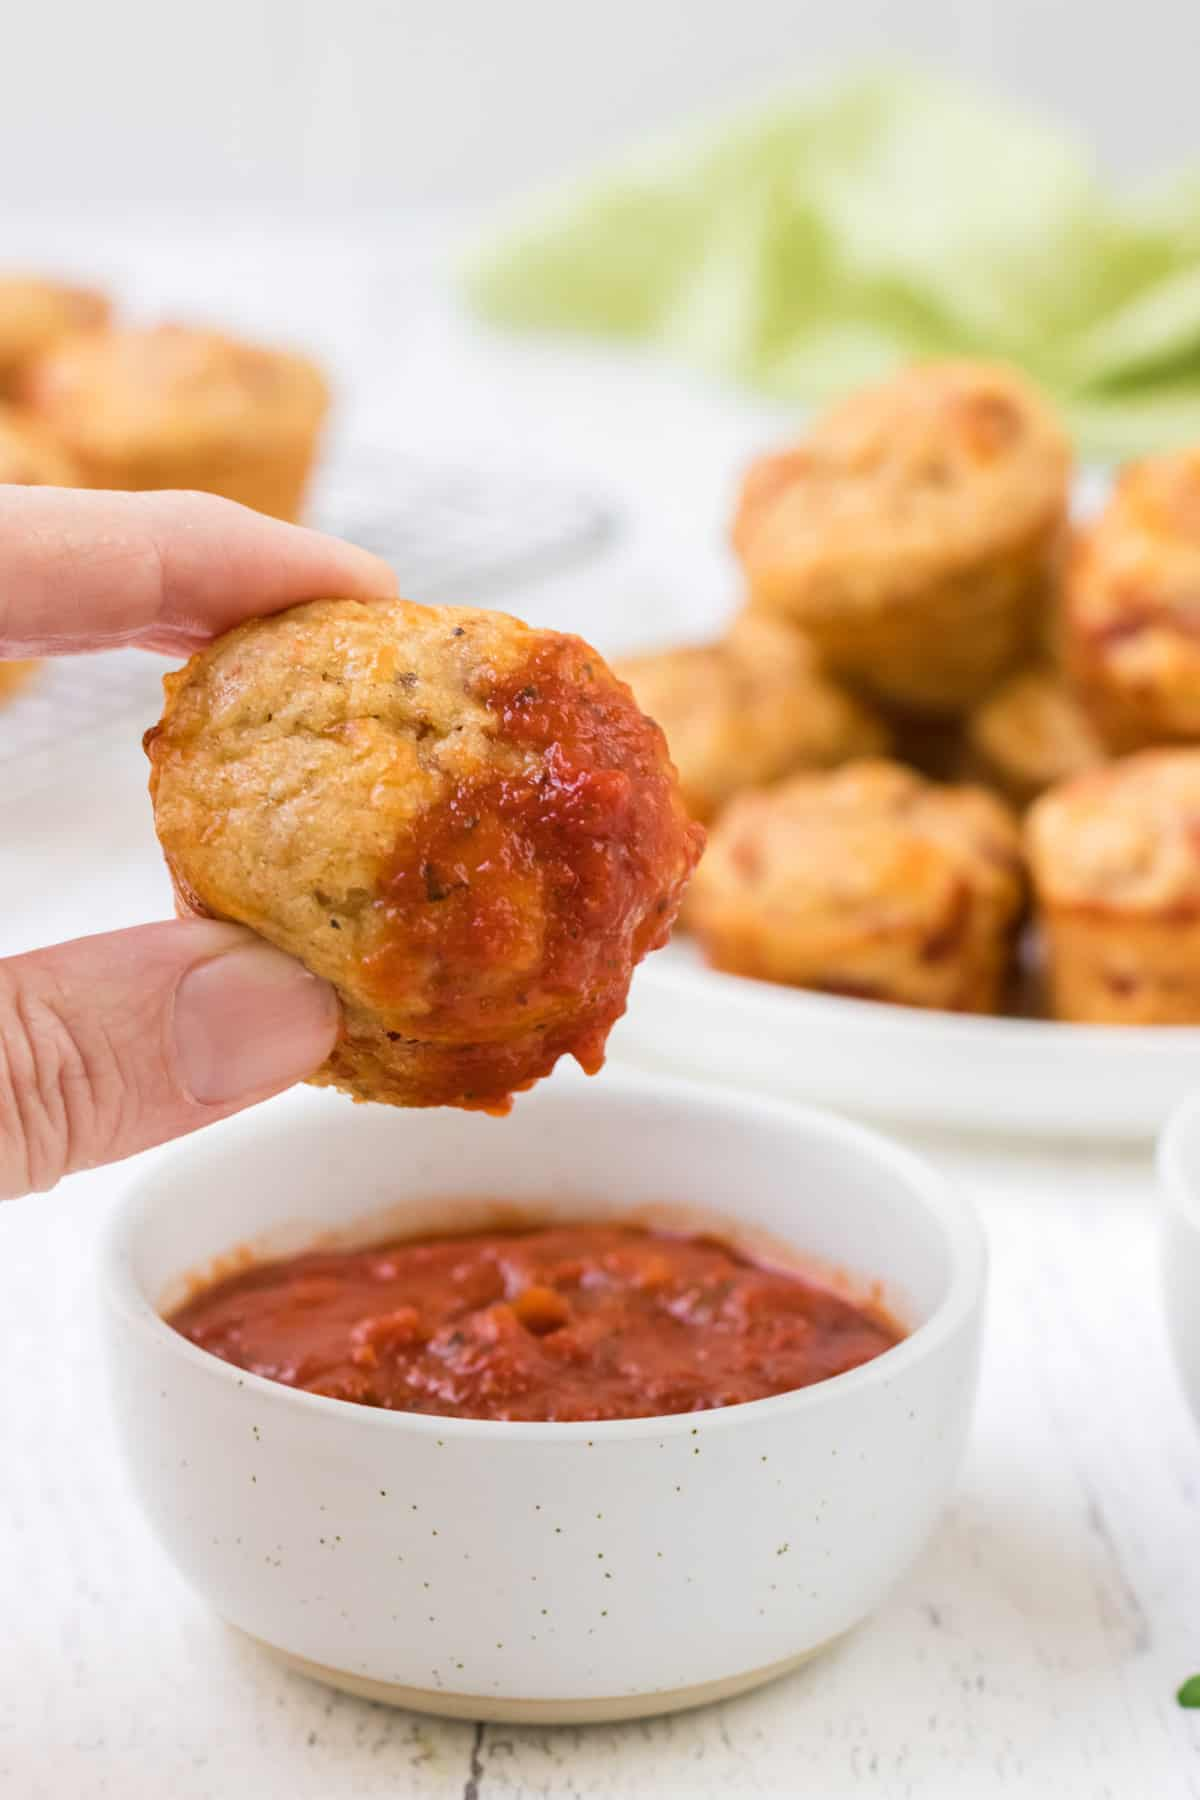 Hand holding a mini pizza muffin dipped in a white bowl of marinara sauce with plate of muffins in background.